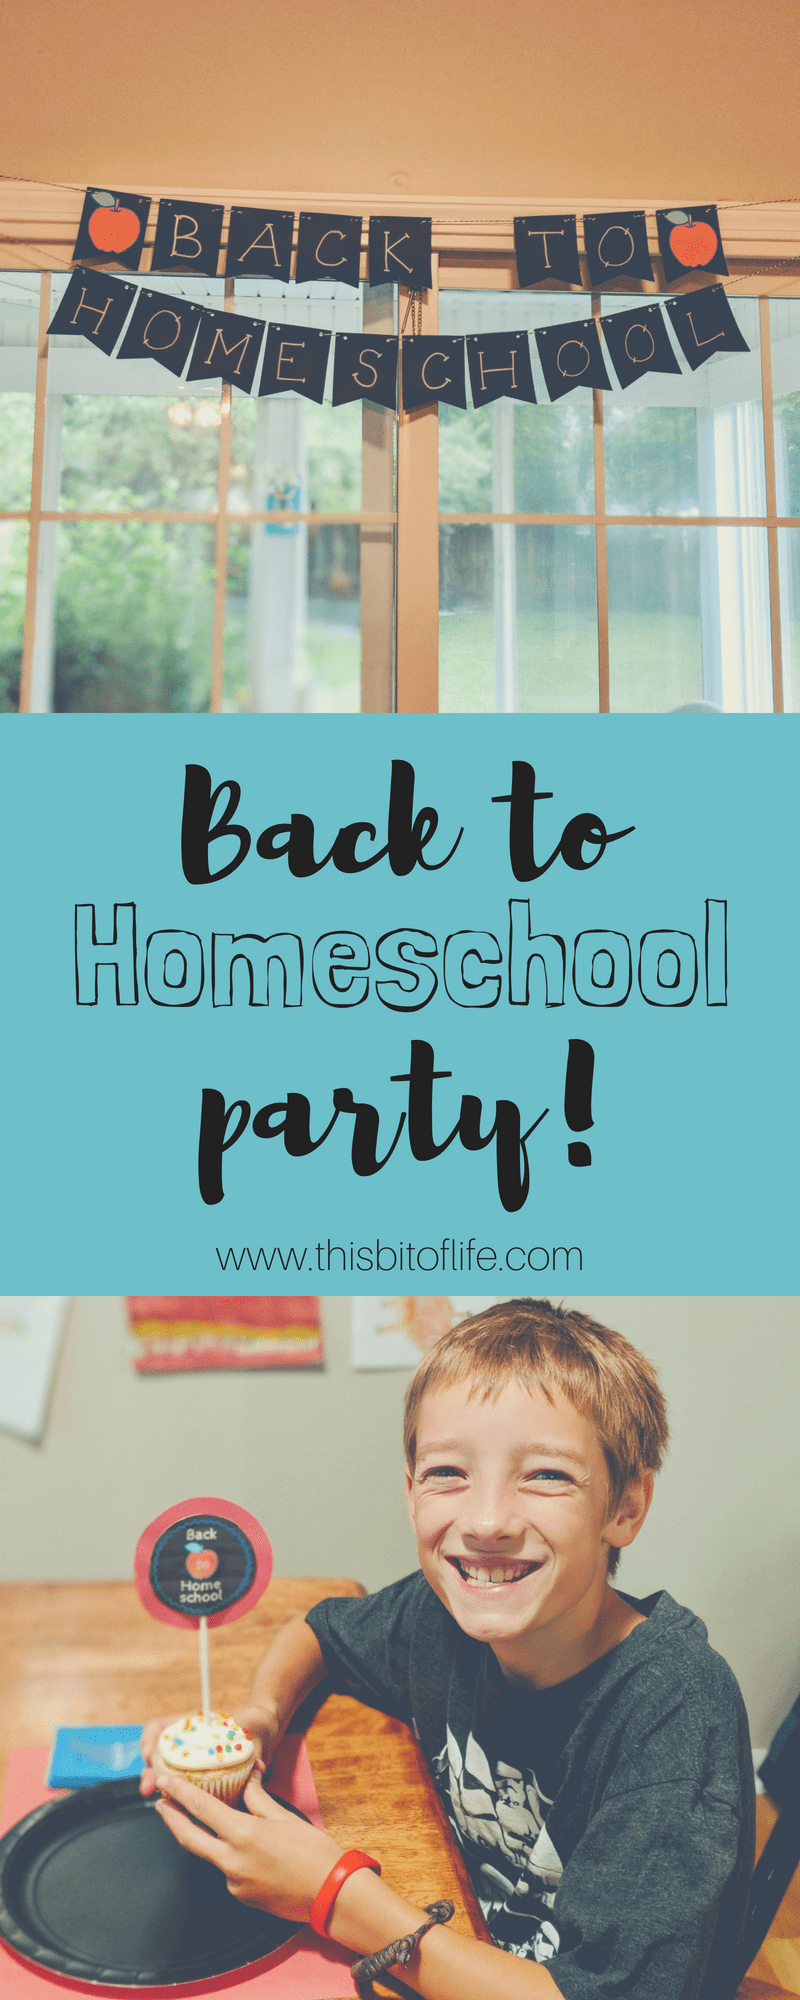 Start a fun back to school tradition with a back to homeschool party free printable #backtoschool #homeschool #homeschooling #freeprintable